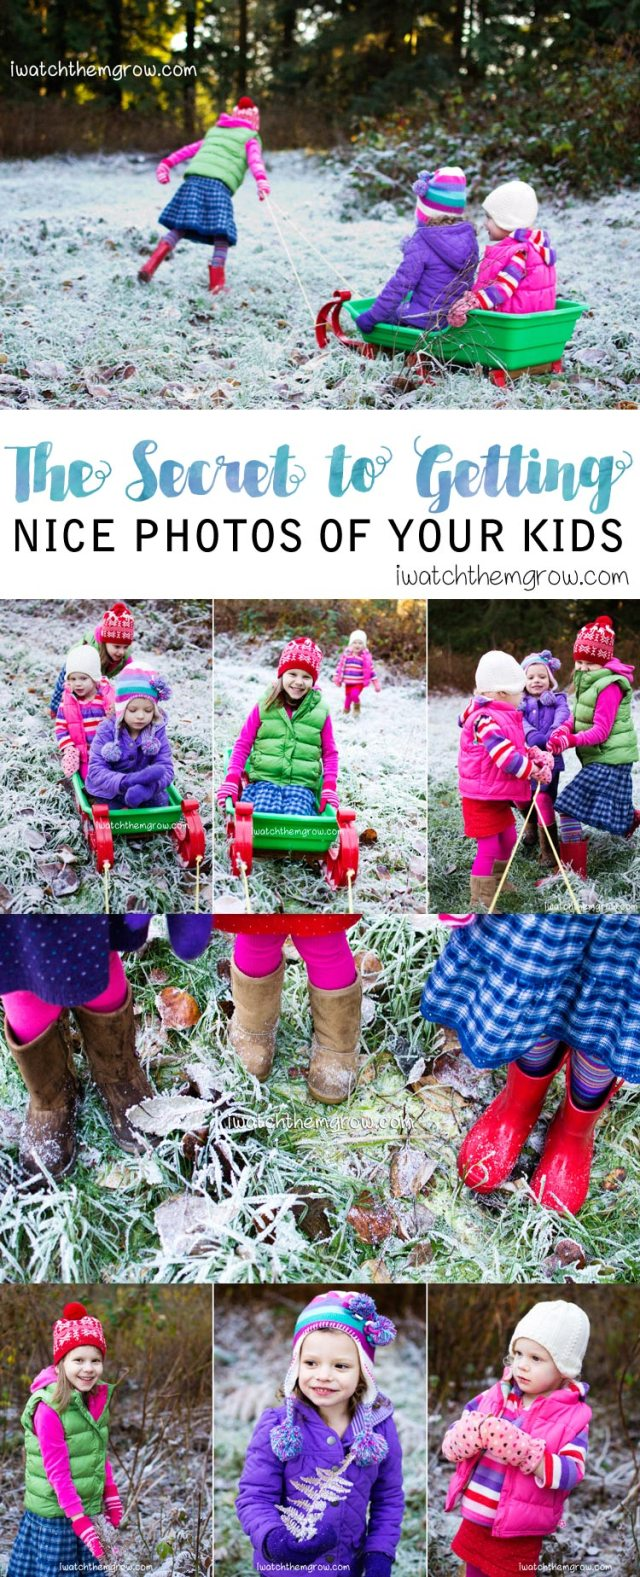 Want nice photos of your kids? Read this mom's secret to success!